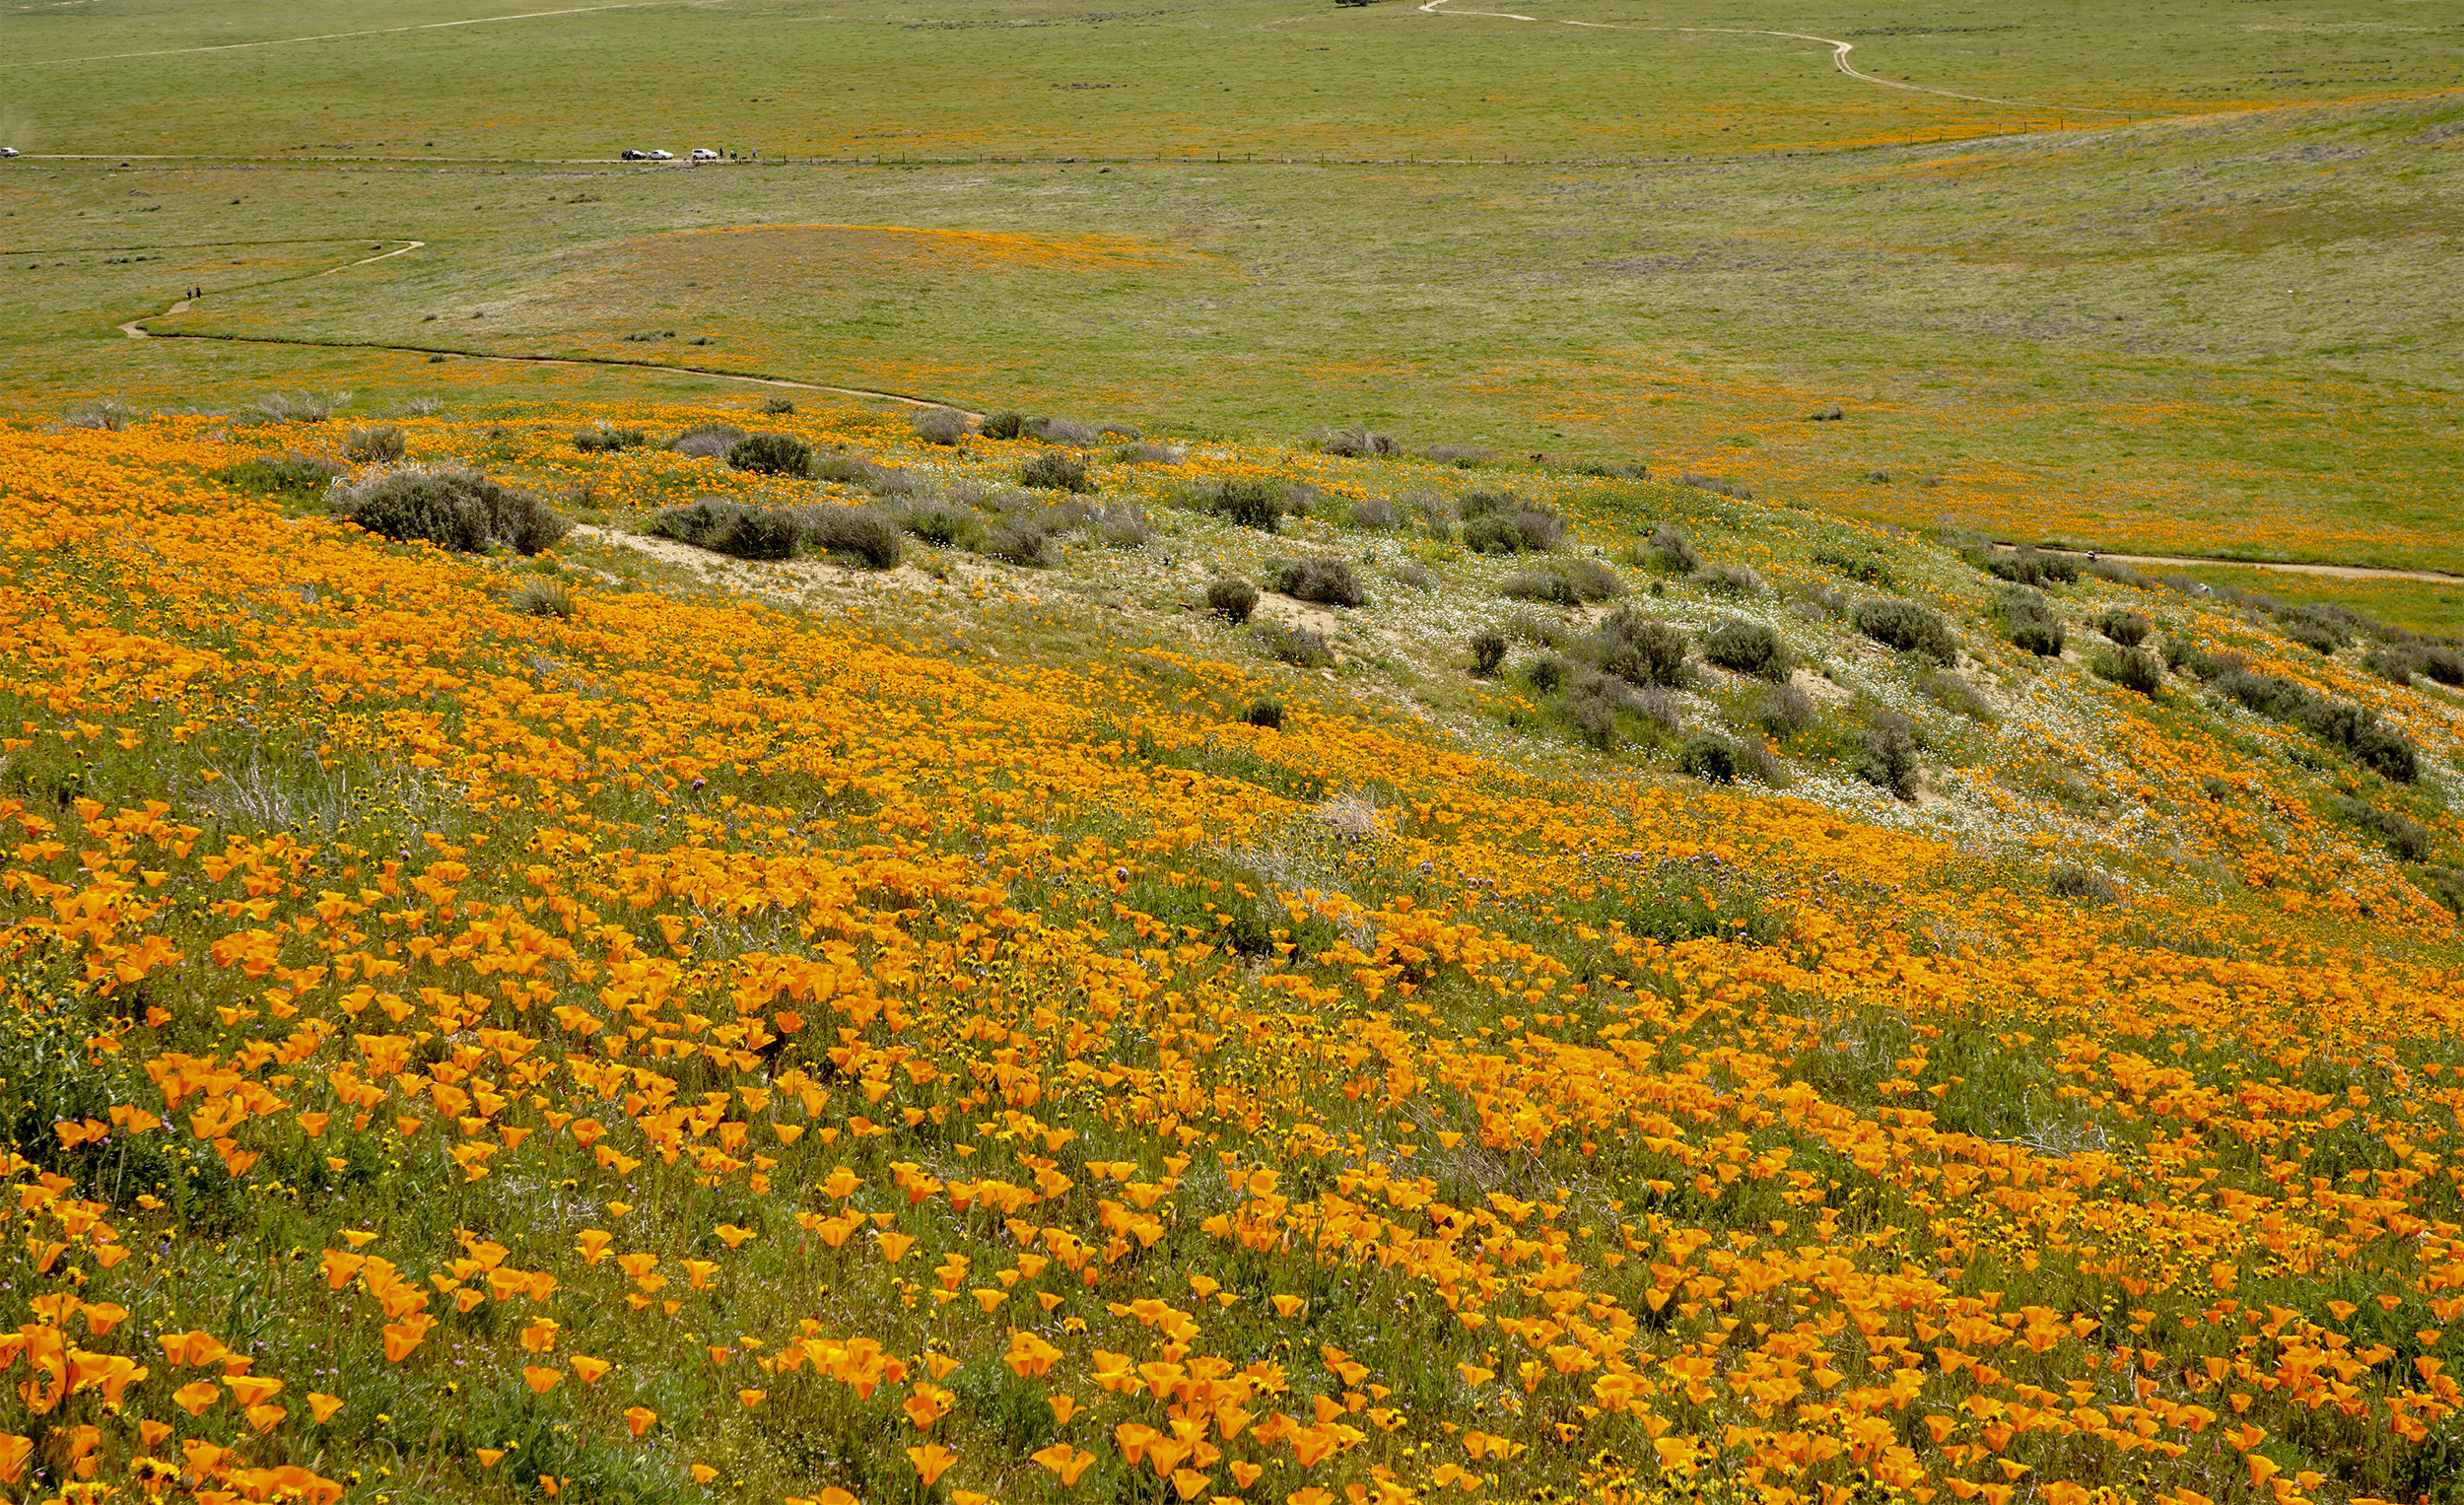 Landscape of Blooming California Poppies